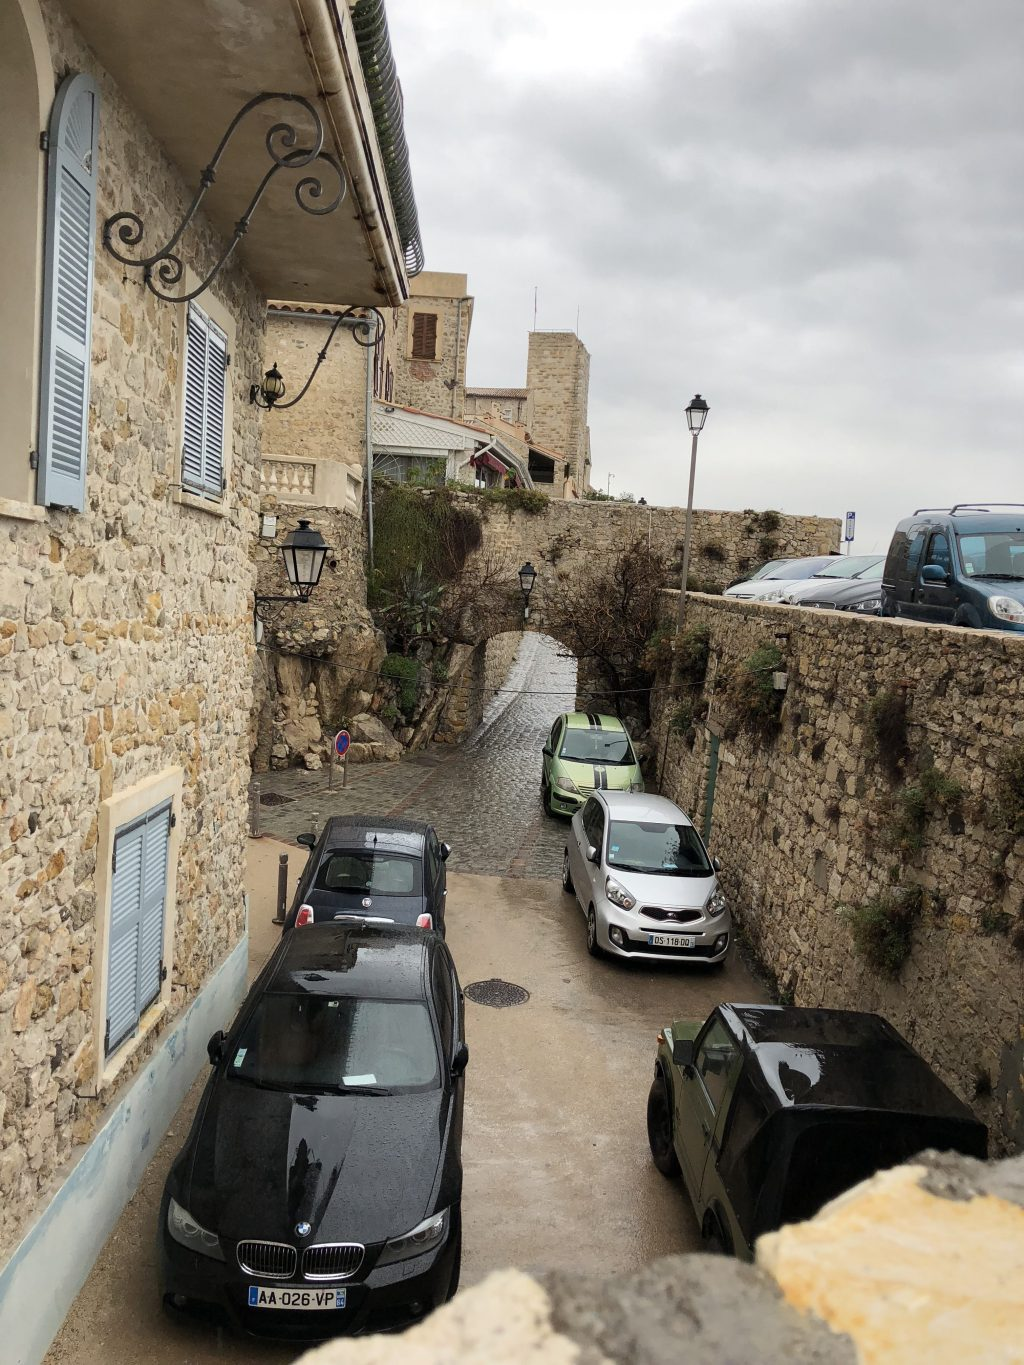 Reminds me of medieval central Italy towns - Antibes Water meetup 22-28.02.2018